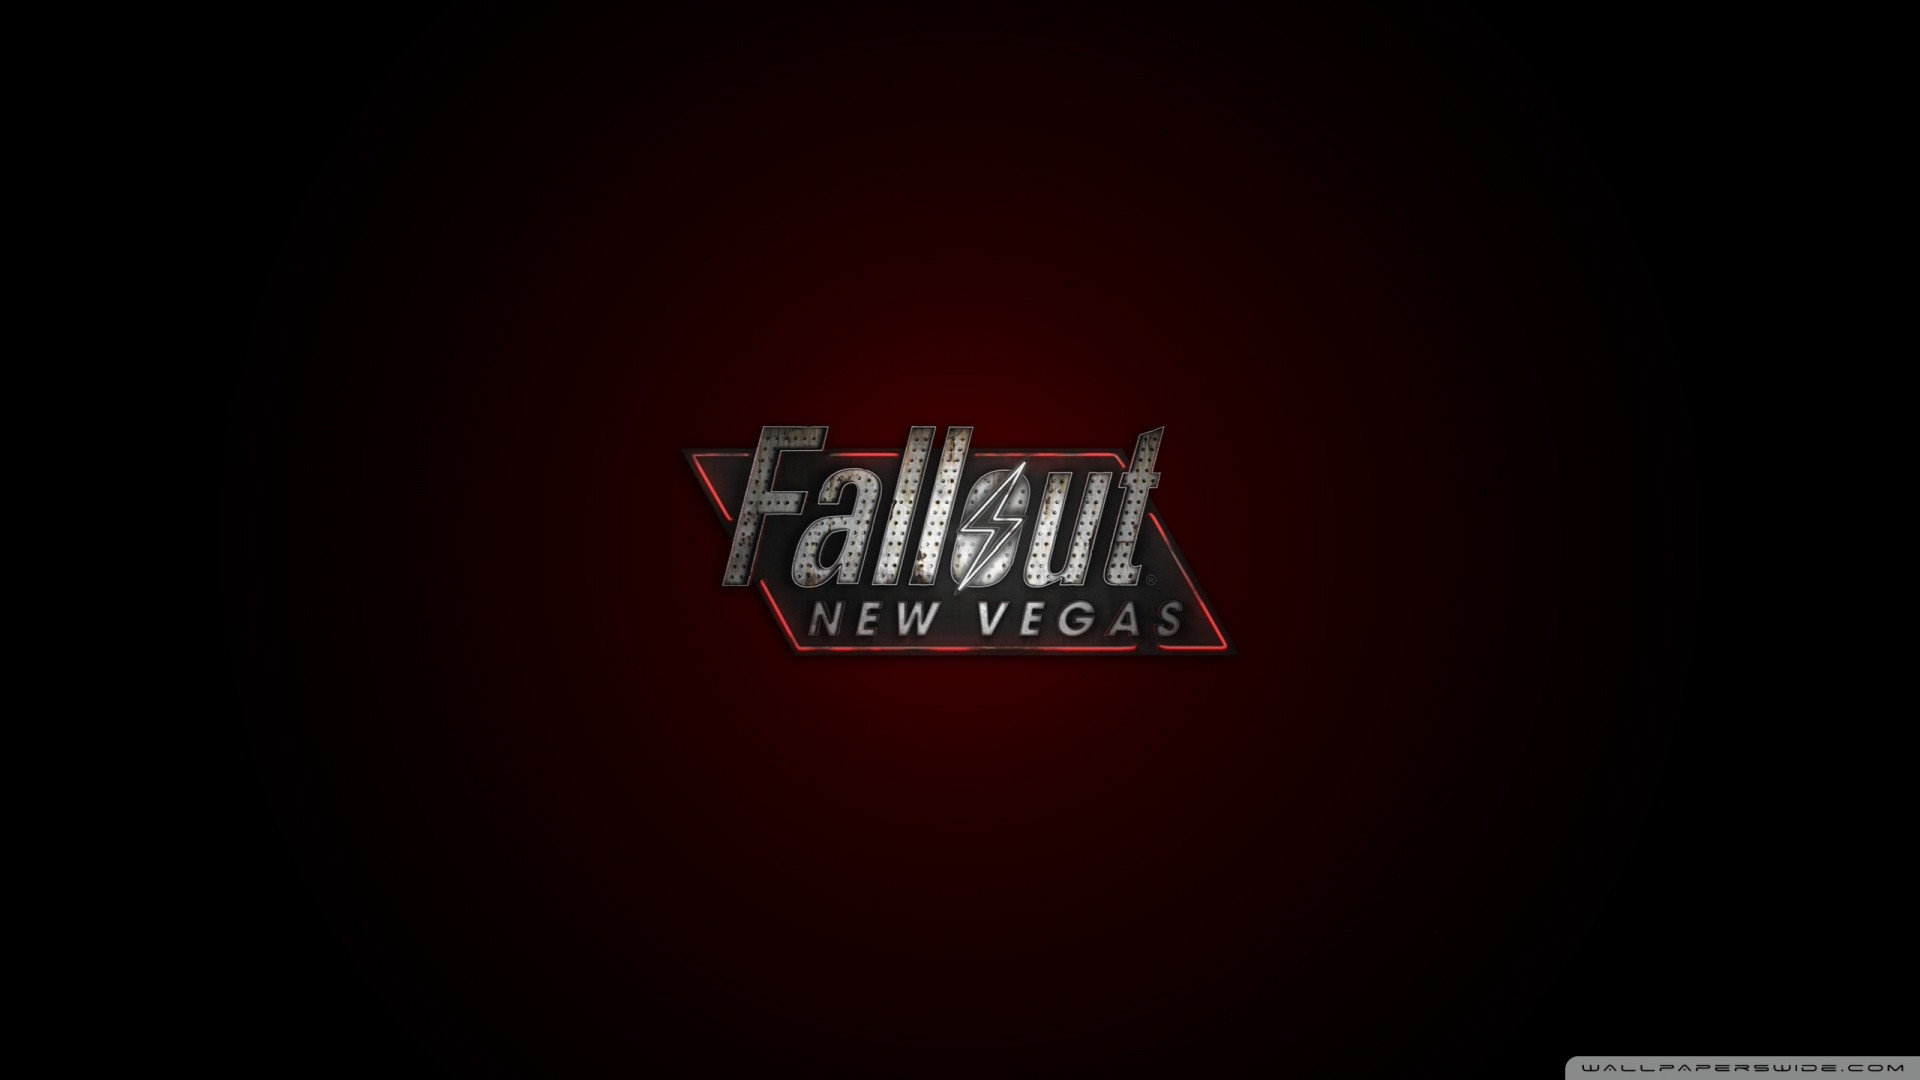 Download Fallout New Vegas HD Wallpapers for Free BsnSCB Graphics   HD  Wallpapers   Pinterest   Fallout and Wallpaper